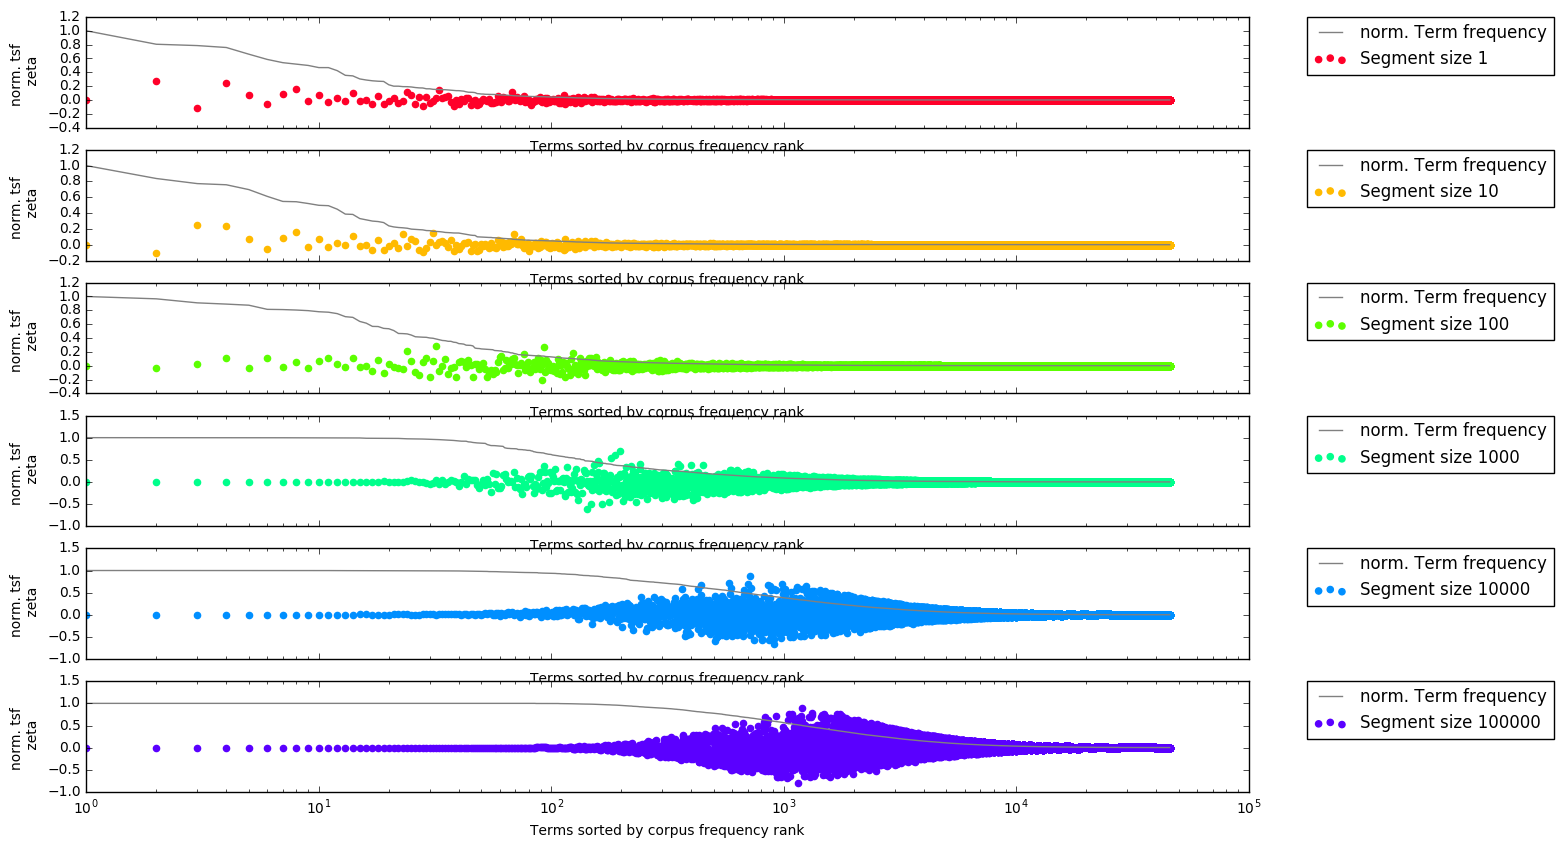 Distribution of Burrows Zeta (sd0) scores depending on segment size. Each dot is one word, ordered by descending frequency. The x-axis is log-scaled.